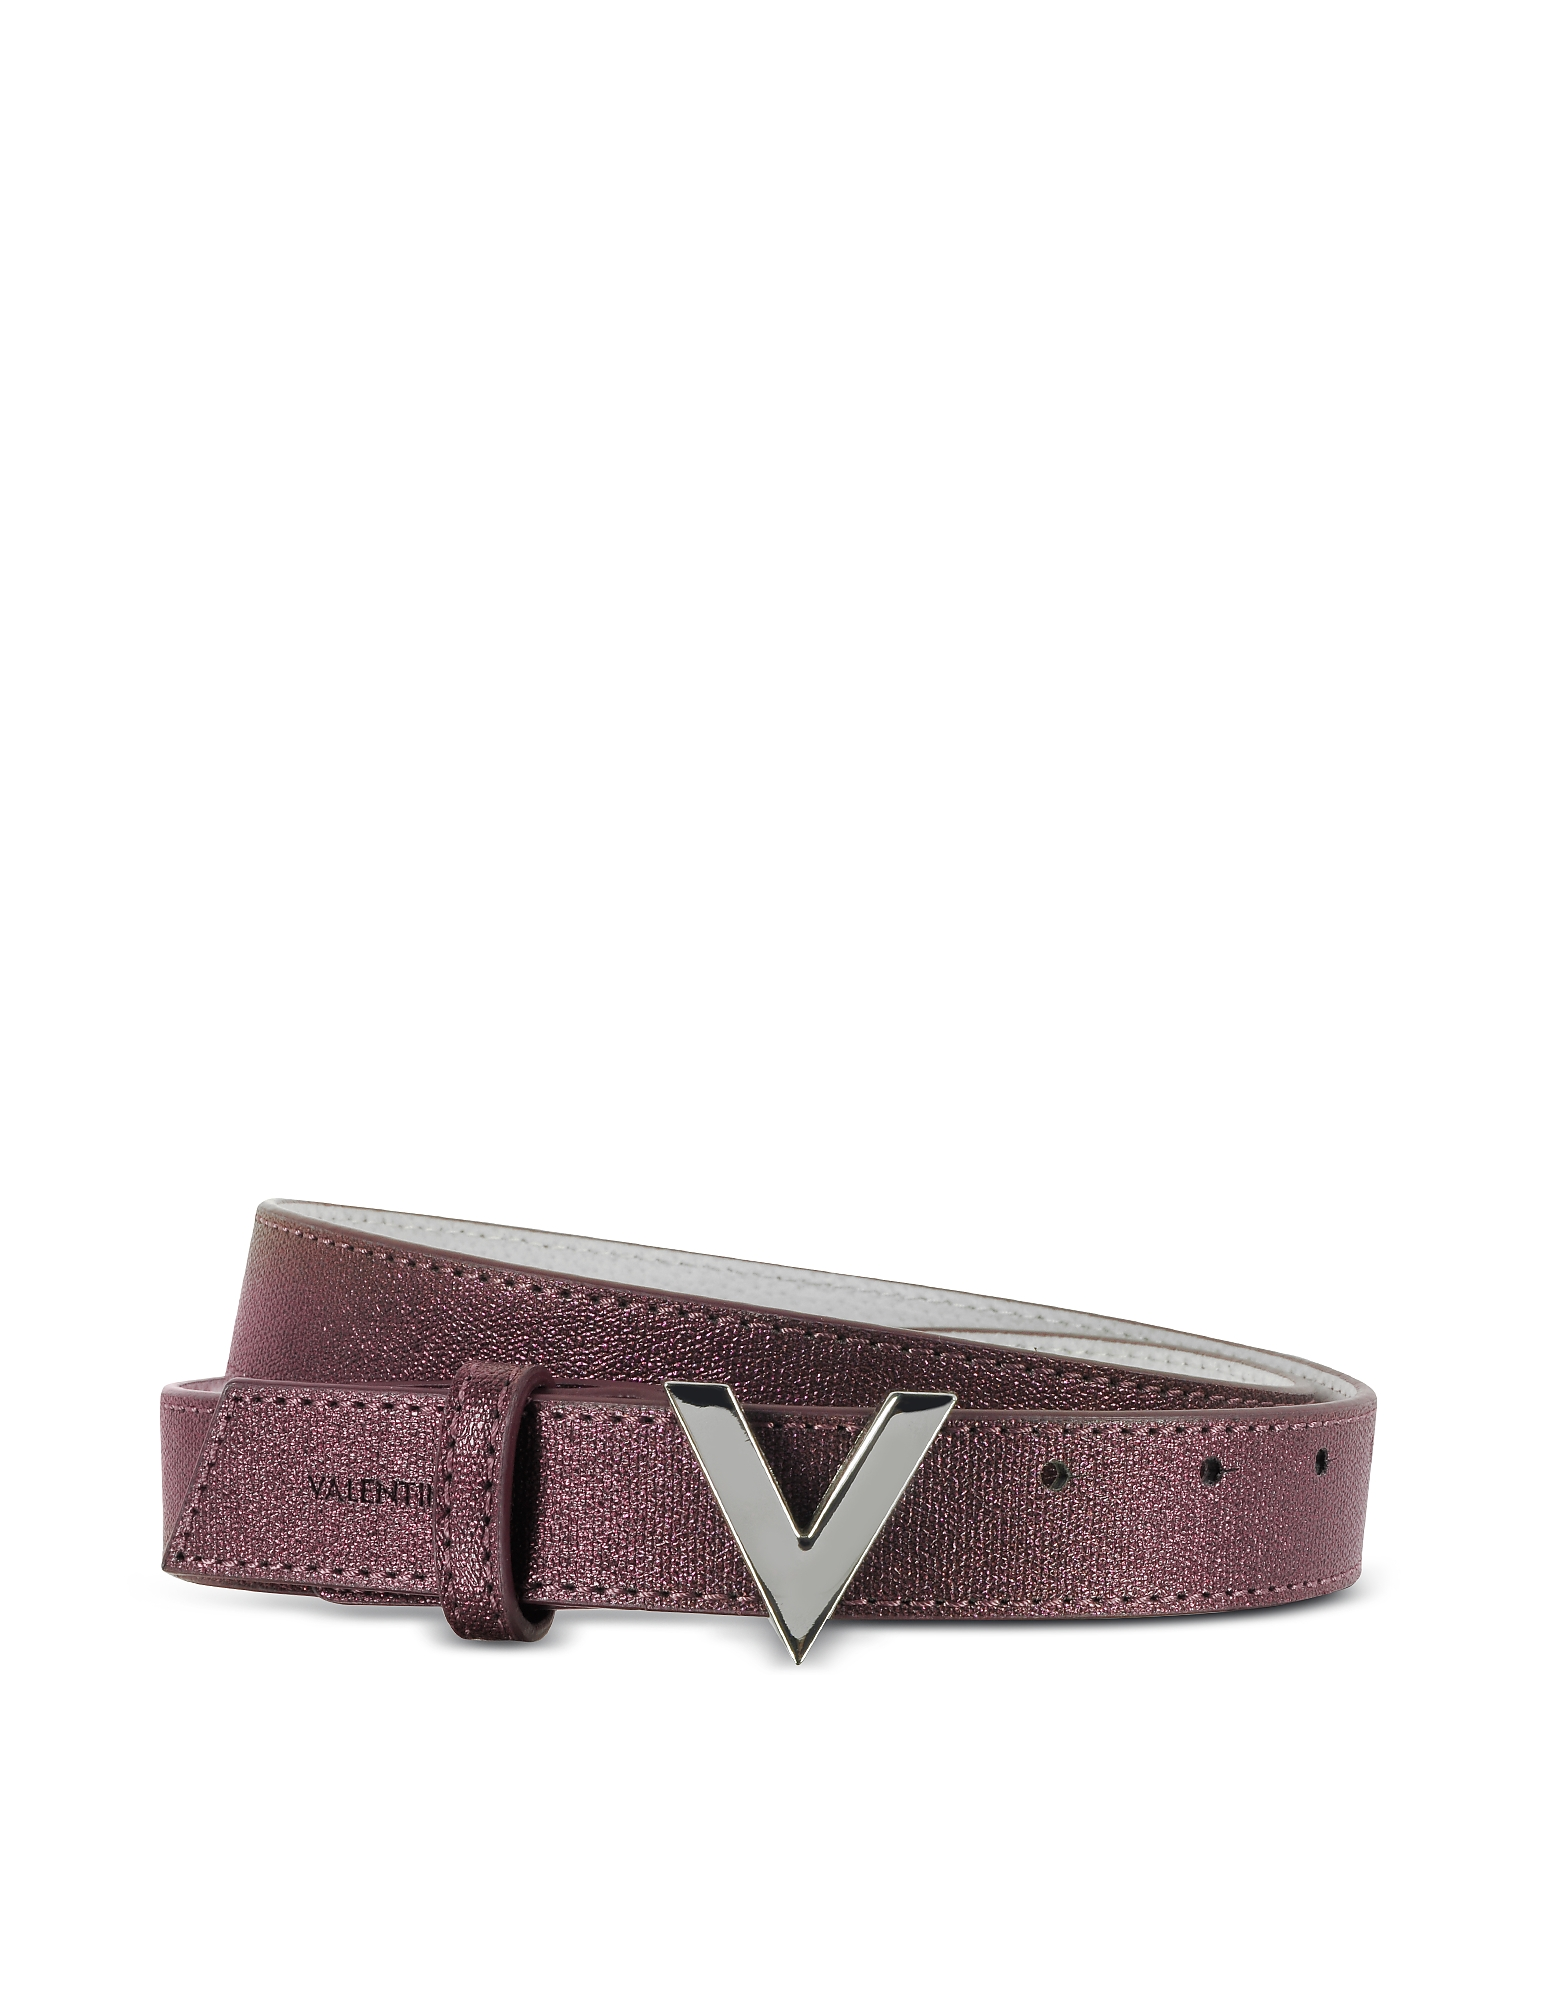 VALENTINO by Mario Valentino 女士腰带, Marilyn Purple Eco-Leather Women's Belt